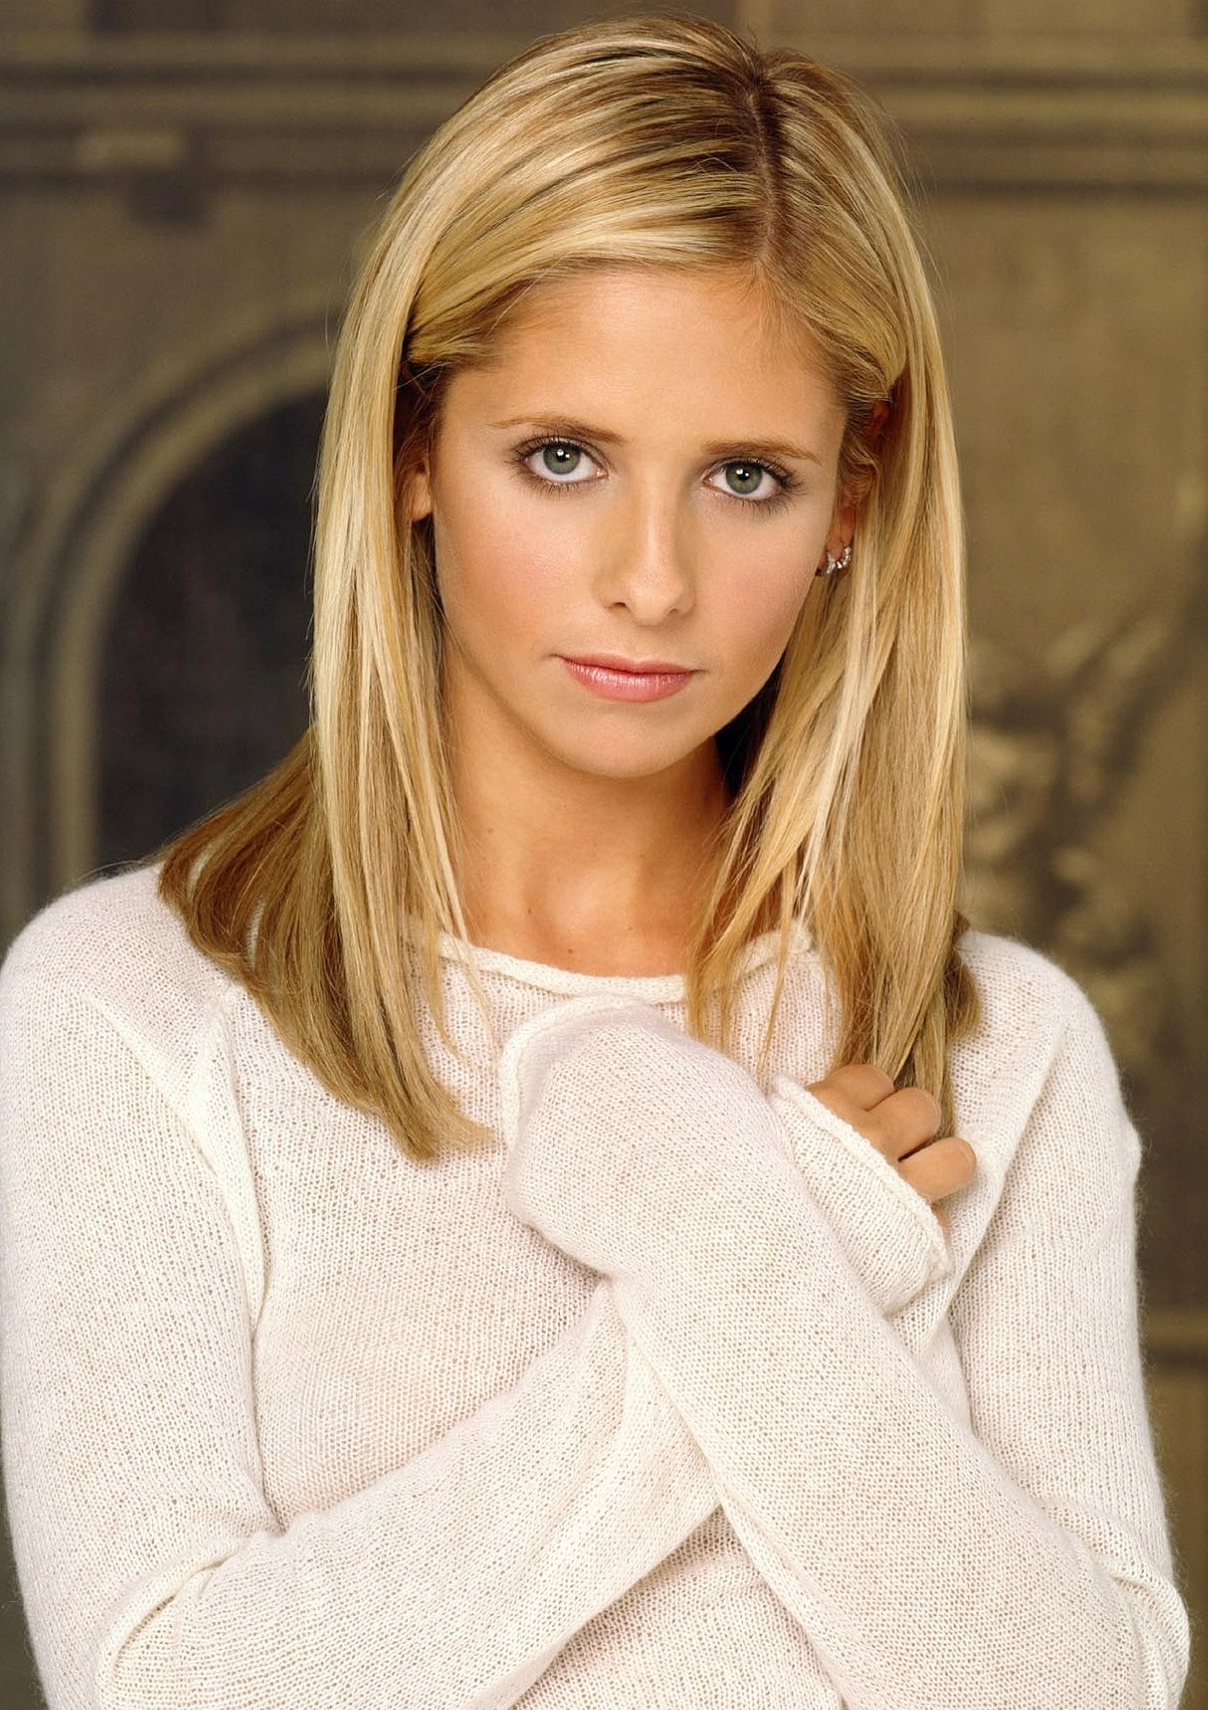 Buffy the Vampire Slayer's Buffy Summers (1997-2003)